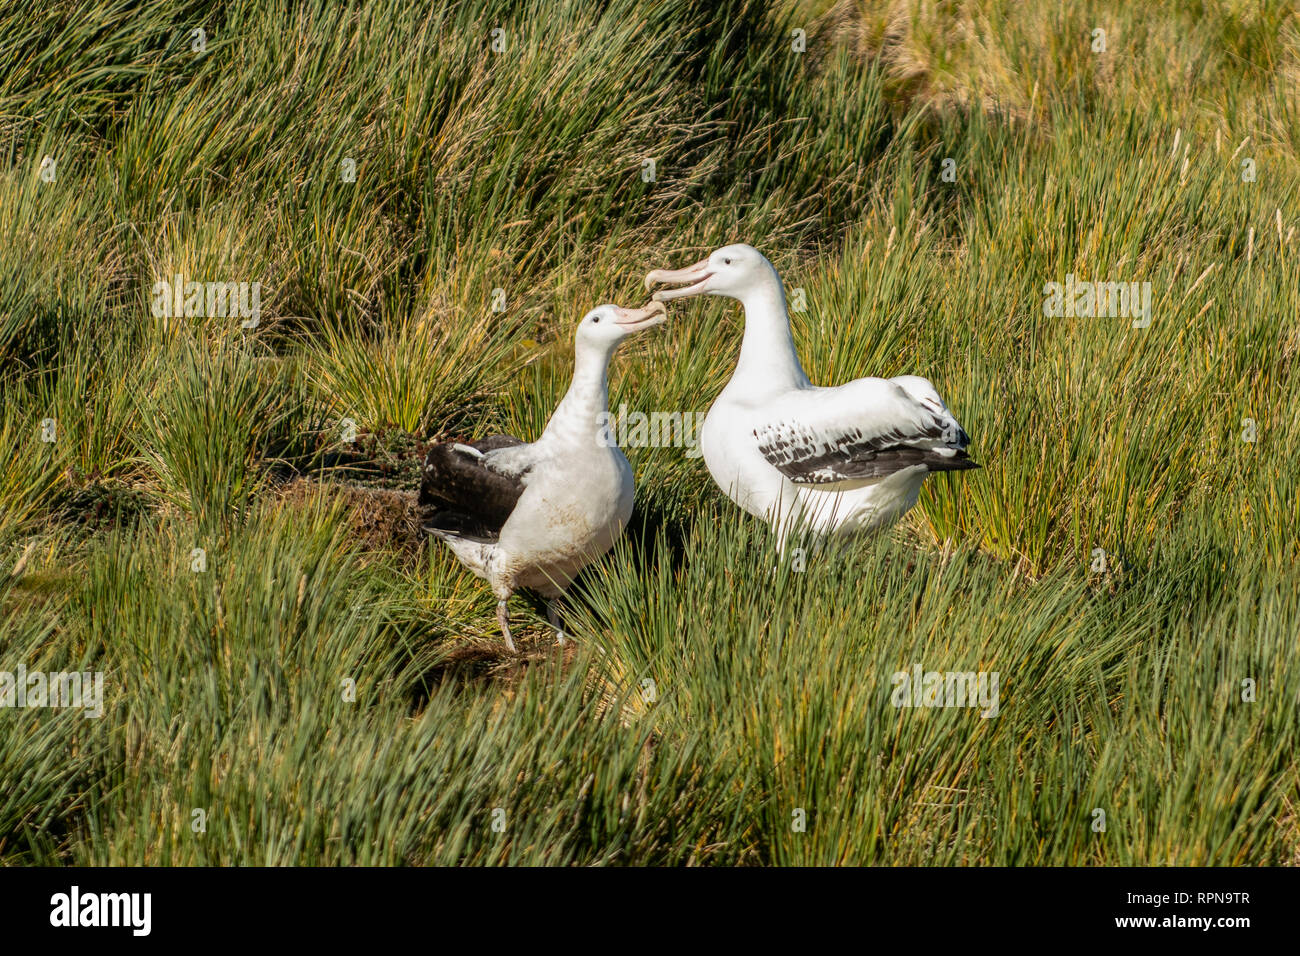 Pair of Wandering Albatrosses, Dimodea exulans at Prion Island, South Georgia - Stock Image